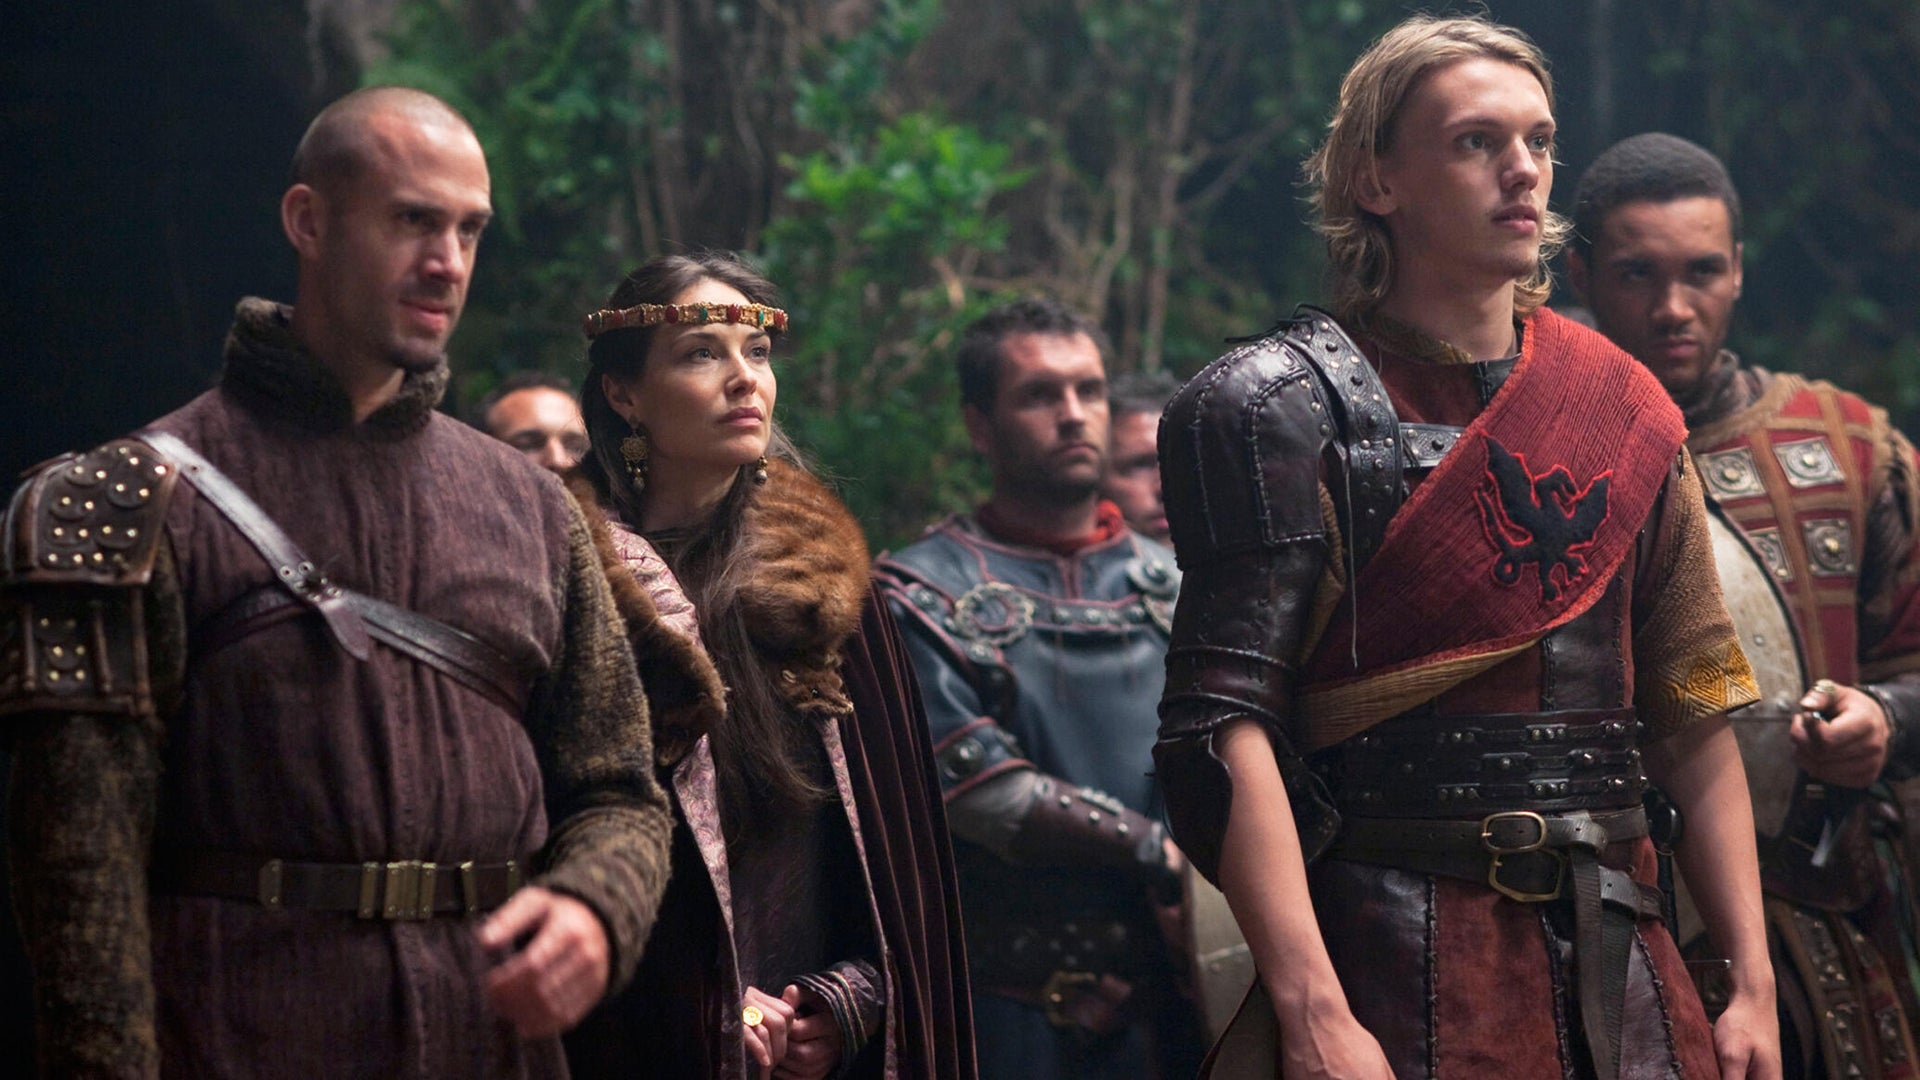 Joseph Fiennes and Jamie Campbell Bower, Camelot